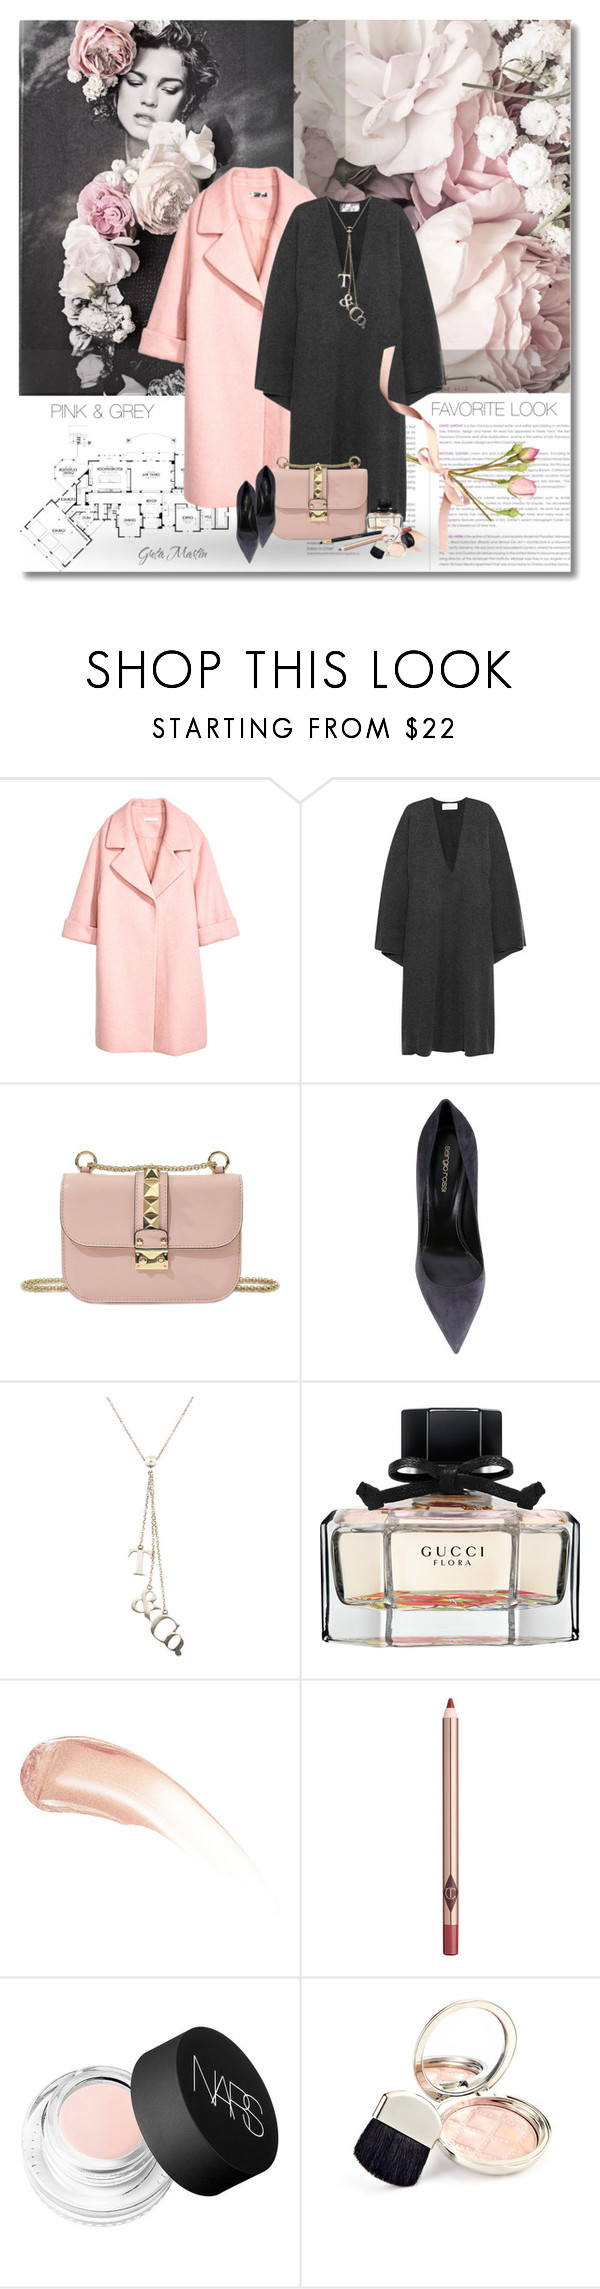 """Pink & Grey ... Favorite Look ... Fall 2016"" by greta-martin ❤ liked on Polyvore featuring Chanel, H&M, Chloé, Valentino, Sergio Rossi, Tiffany & Co., Gucci, Wander Beauty, Charlotte Tilbury and NARS Cosmetics"